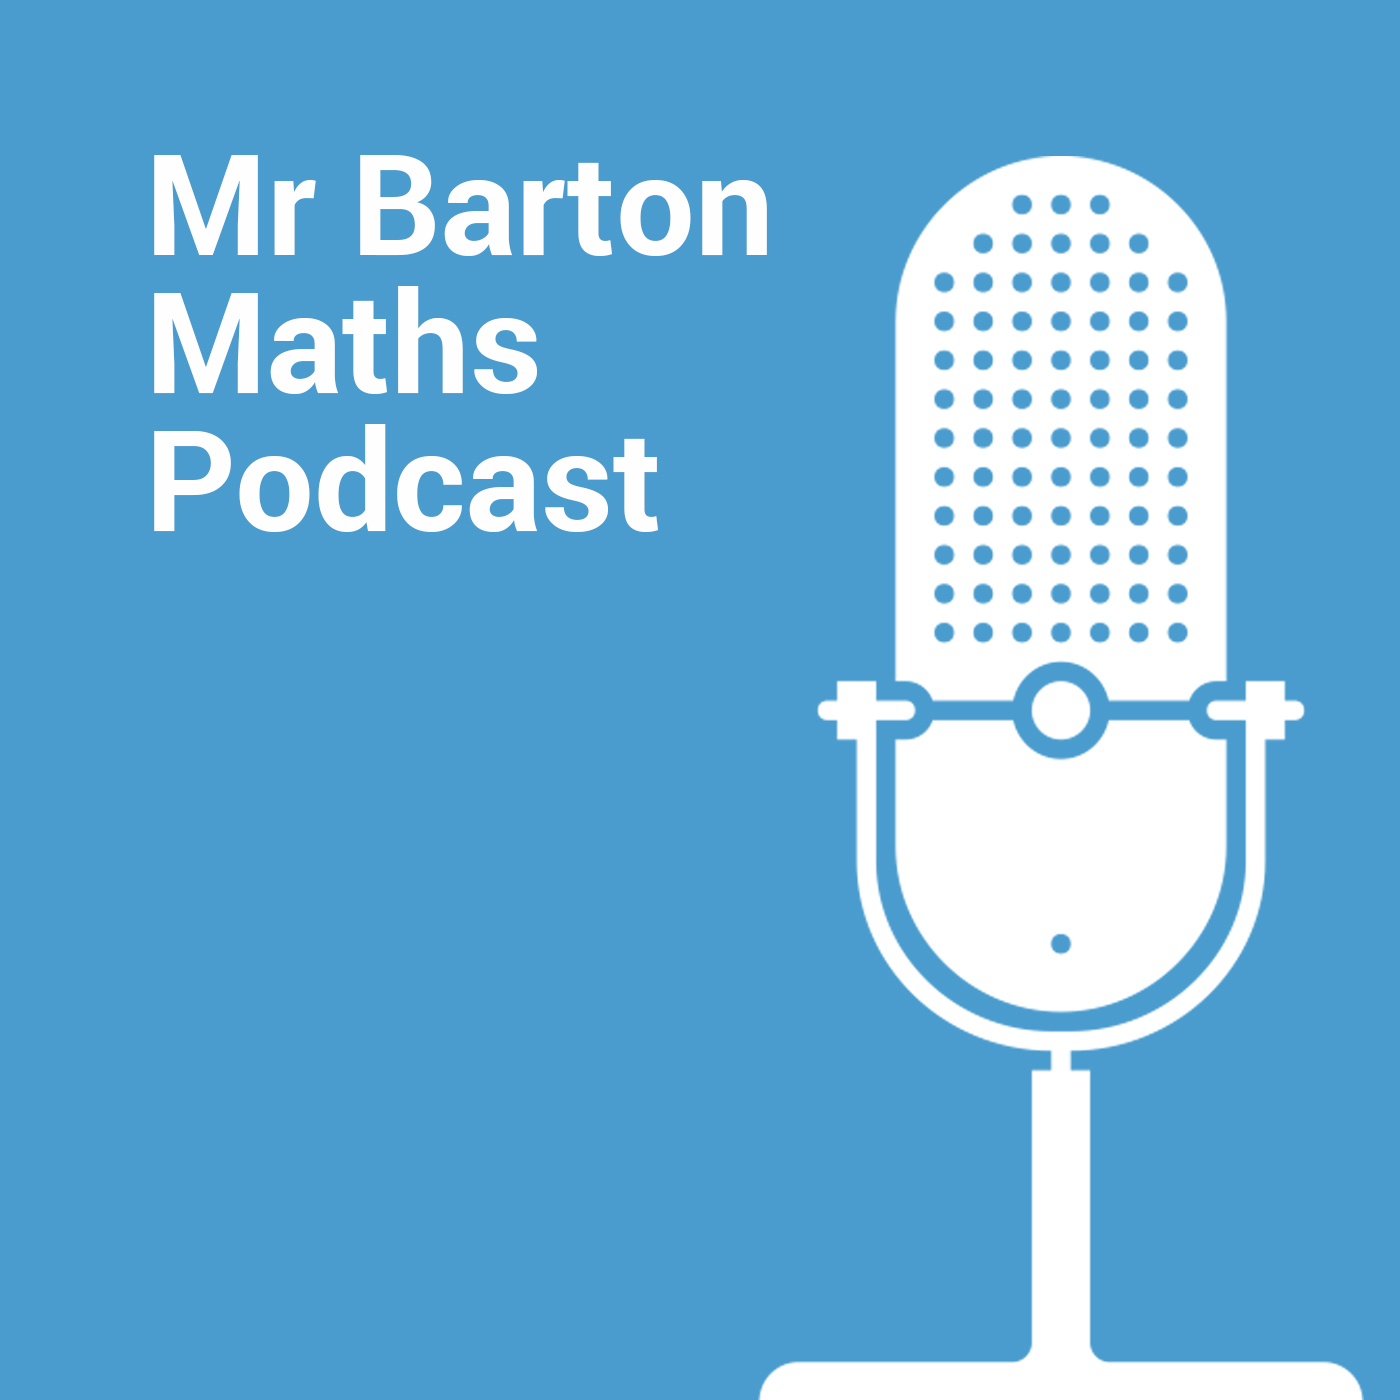 John Corbett – Flipped Learning, Videos and Corbett Maths